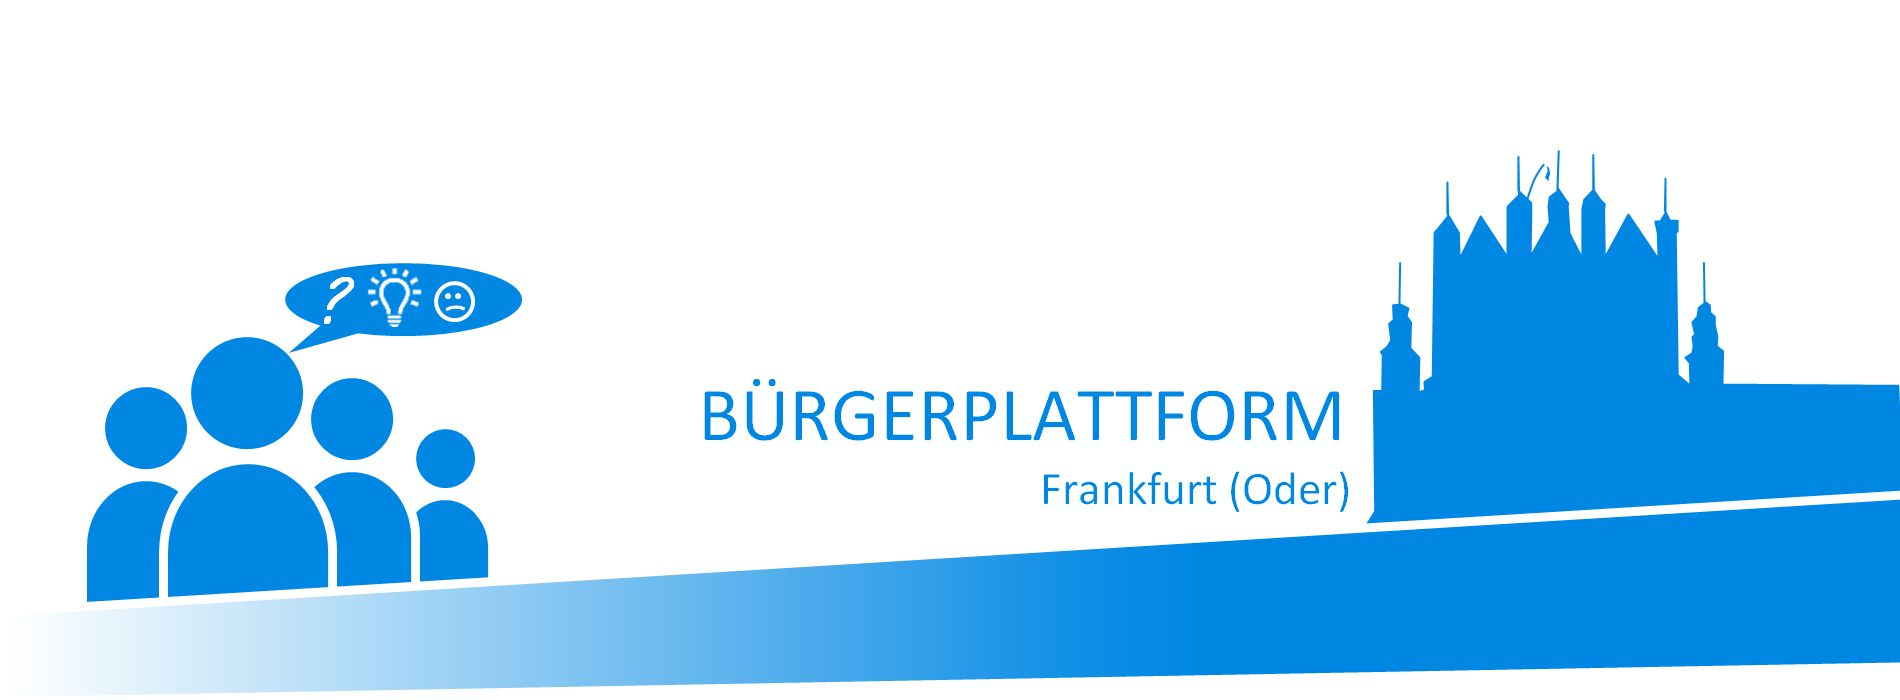 Bürgerplattform